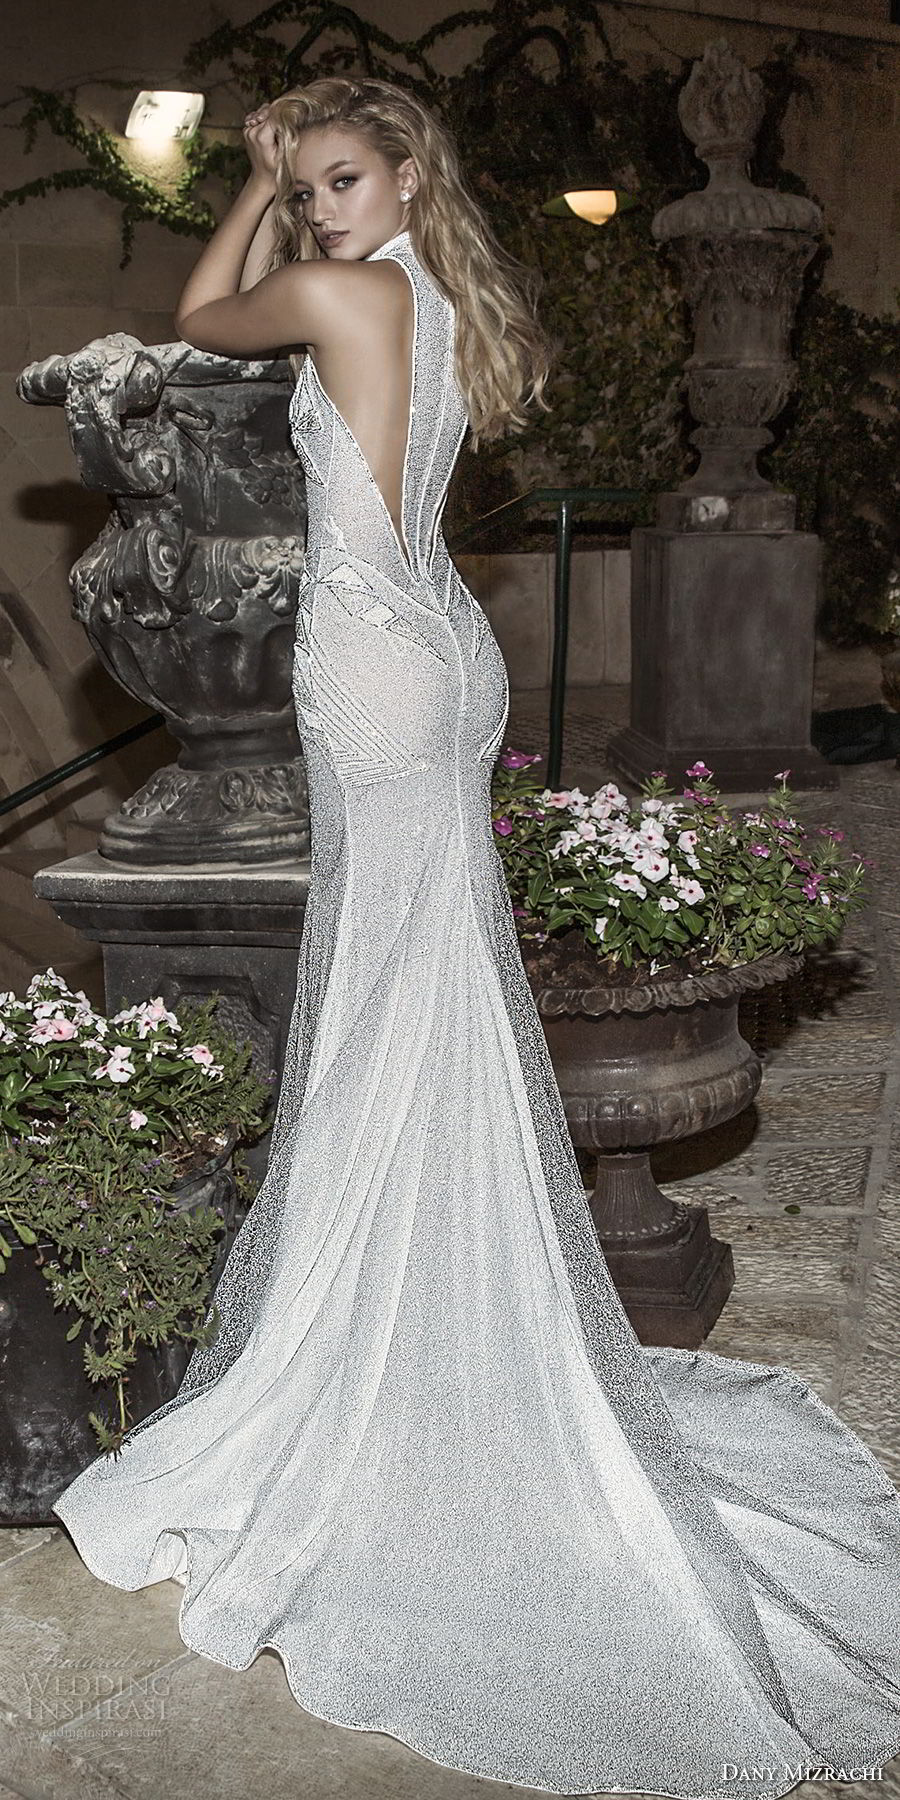 dany mizrachi spring 2018 bridal sleeveless halter neck full embellishment high slit art decor vintage elegant sheath wedding dress rasor back chapel train (26) bv